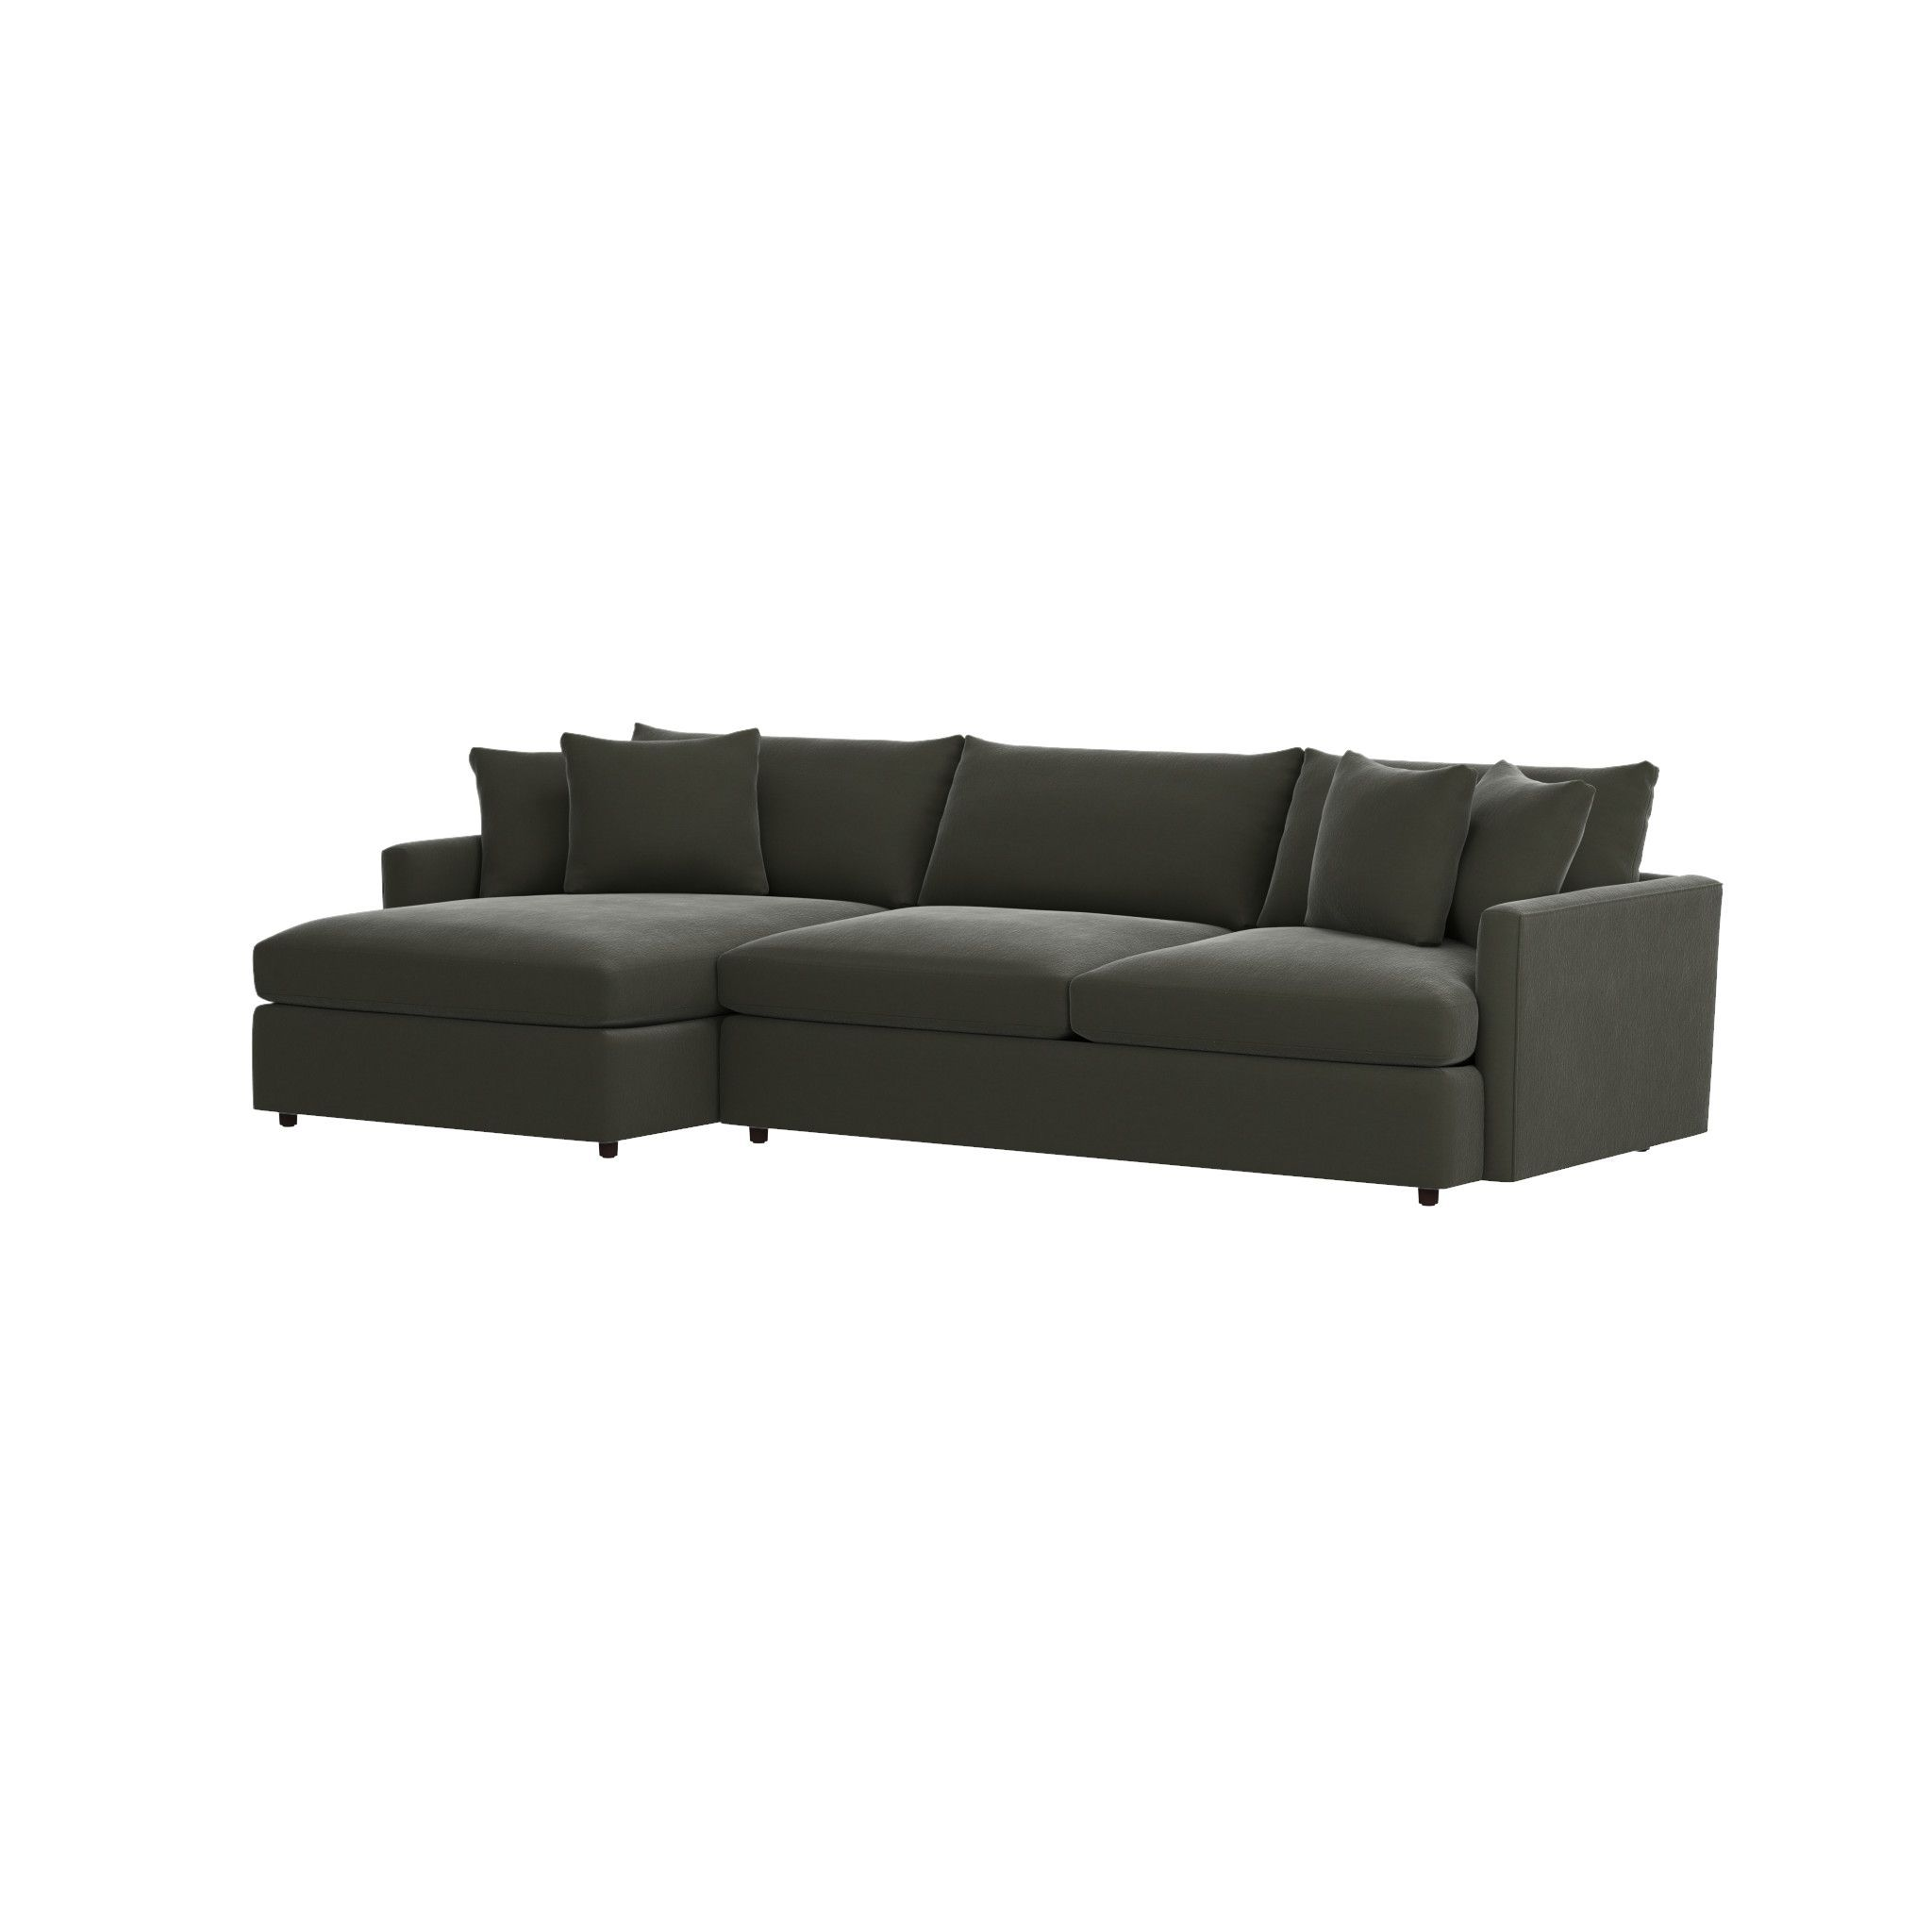 Elegant Lounge II 2 Piece Sectional Sofa. Grey Chaise ...